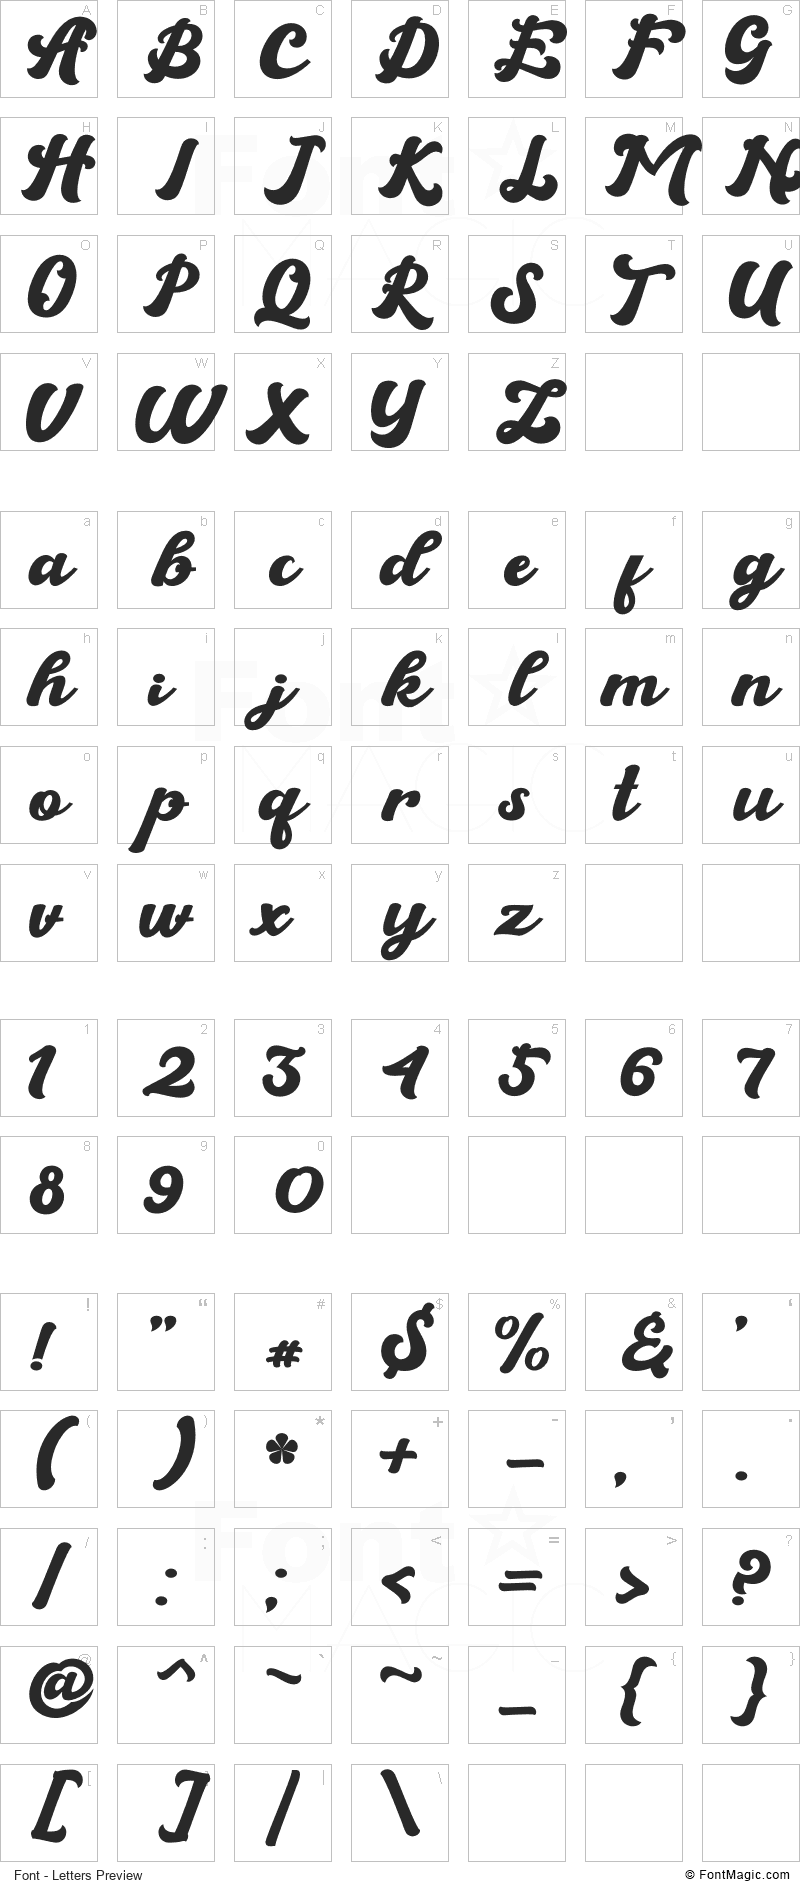 Brandy Font - All Latters Preview Chart